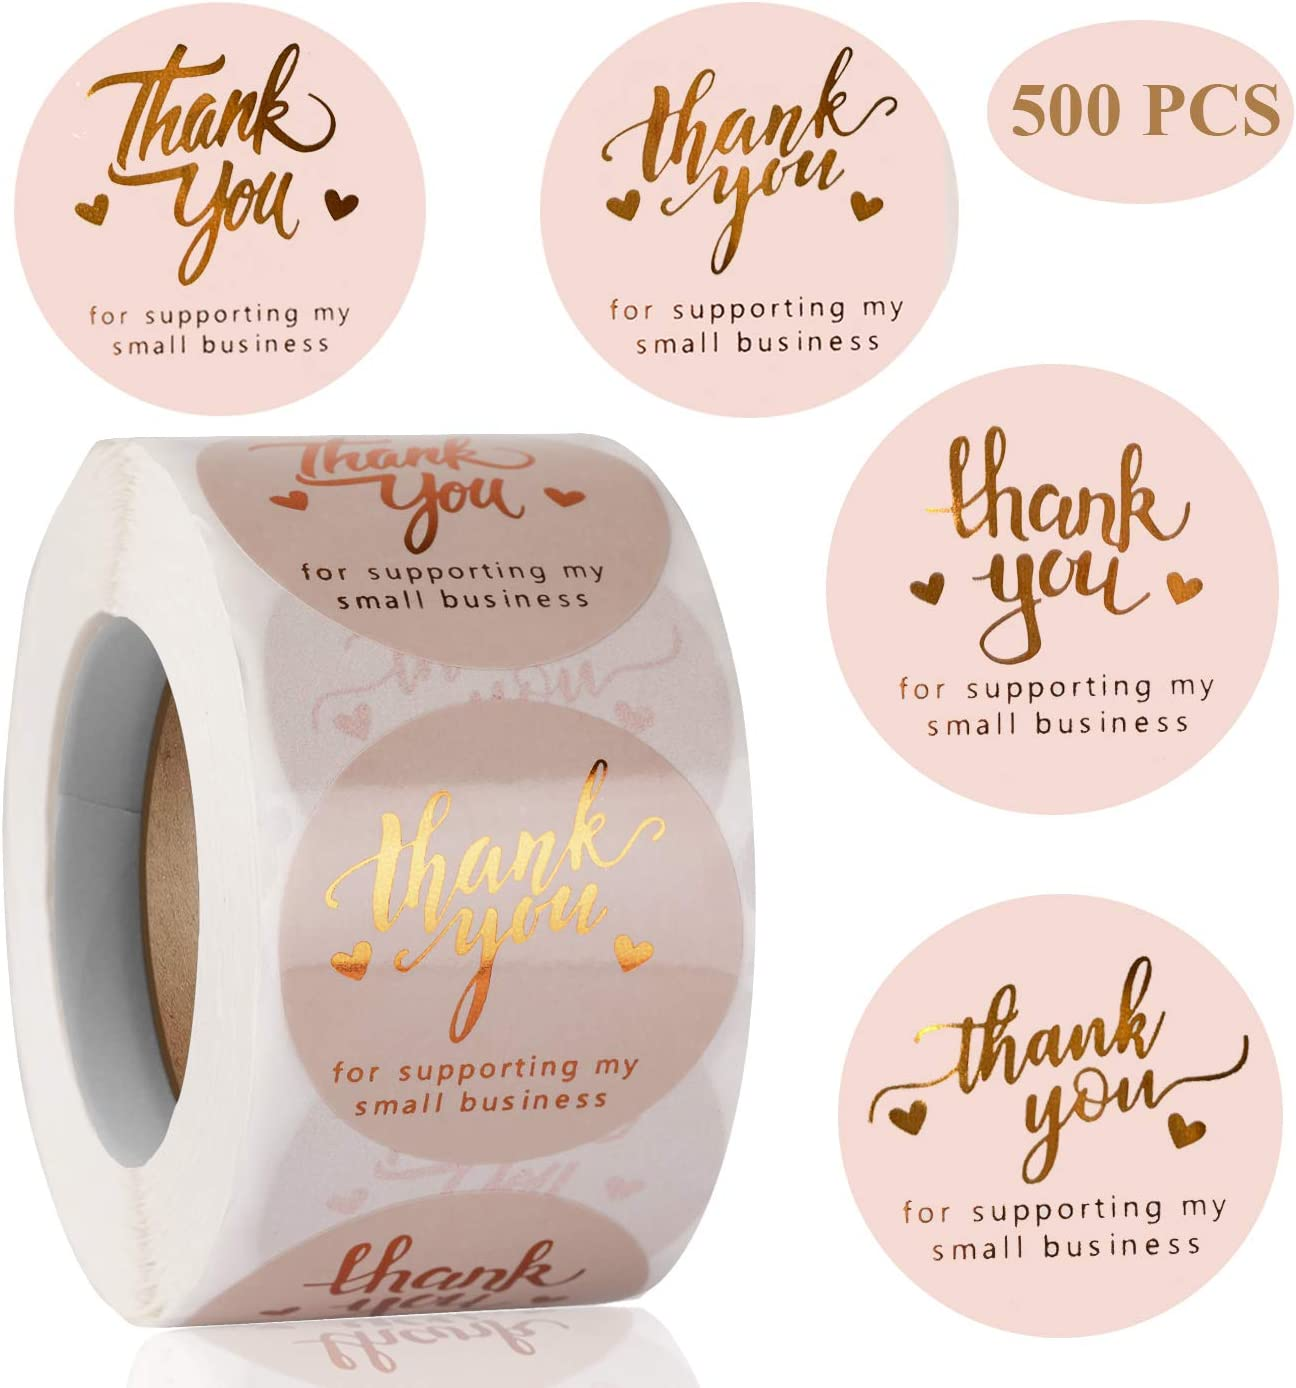 Amazon Com 1 5 Thank You For Supporting My Small Business Stickers 4 Designs Hot Silver Font Thank You Sticker Rolls For Greeting Cards Flower Bouquets Self Adhesive Labels For Gift Wraps Tags Mailers